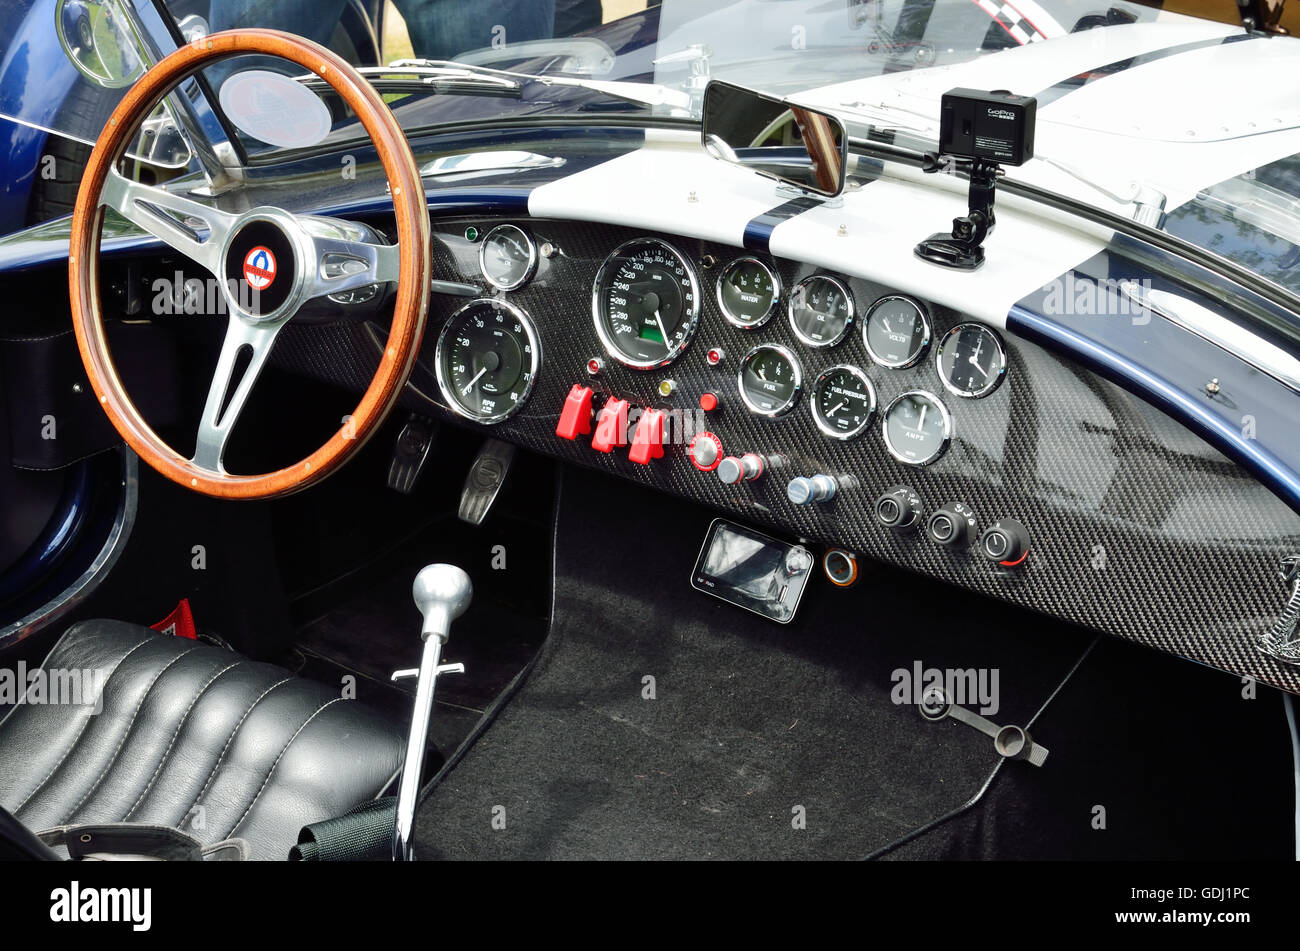 interior of the race vintage car the inner space of the stock photo royalty free image. Black Bedroom Furniture Sets. Home Design Ideas